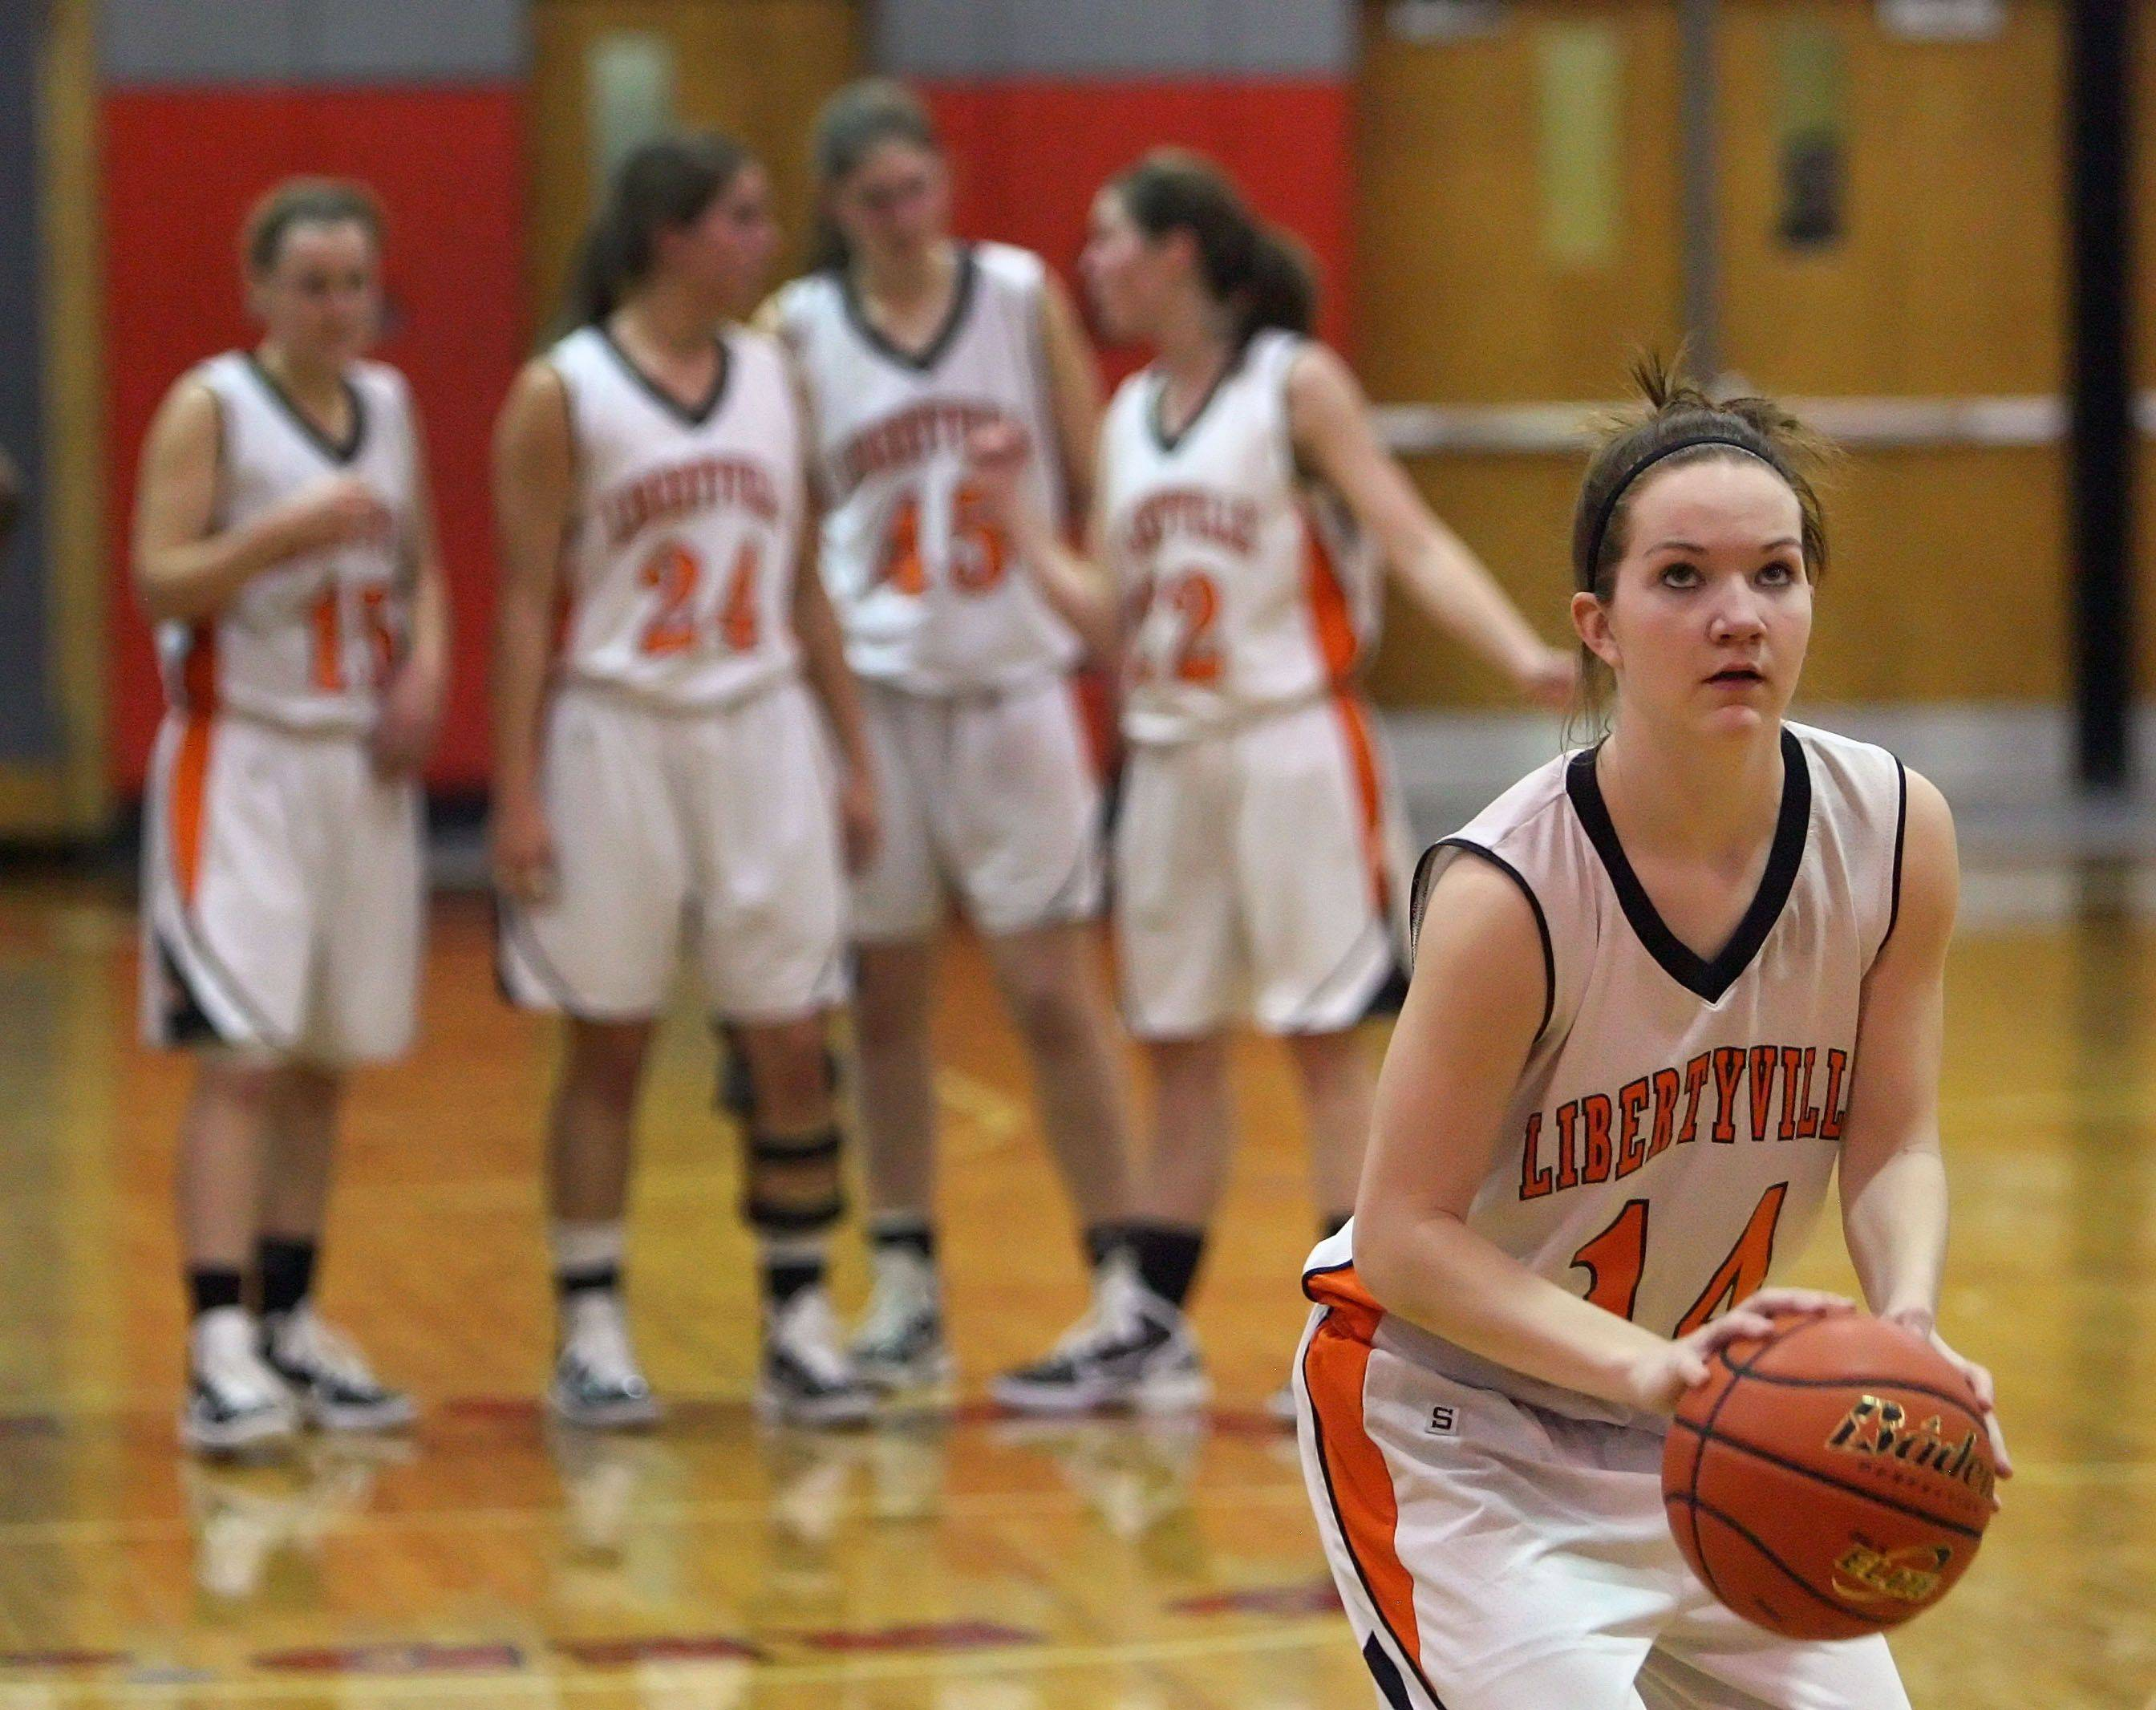 Images: Libertyville vs. Zion-Benton girls basketball